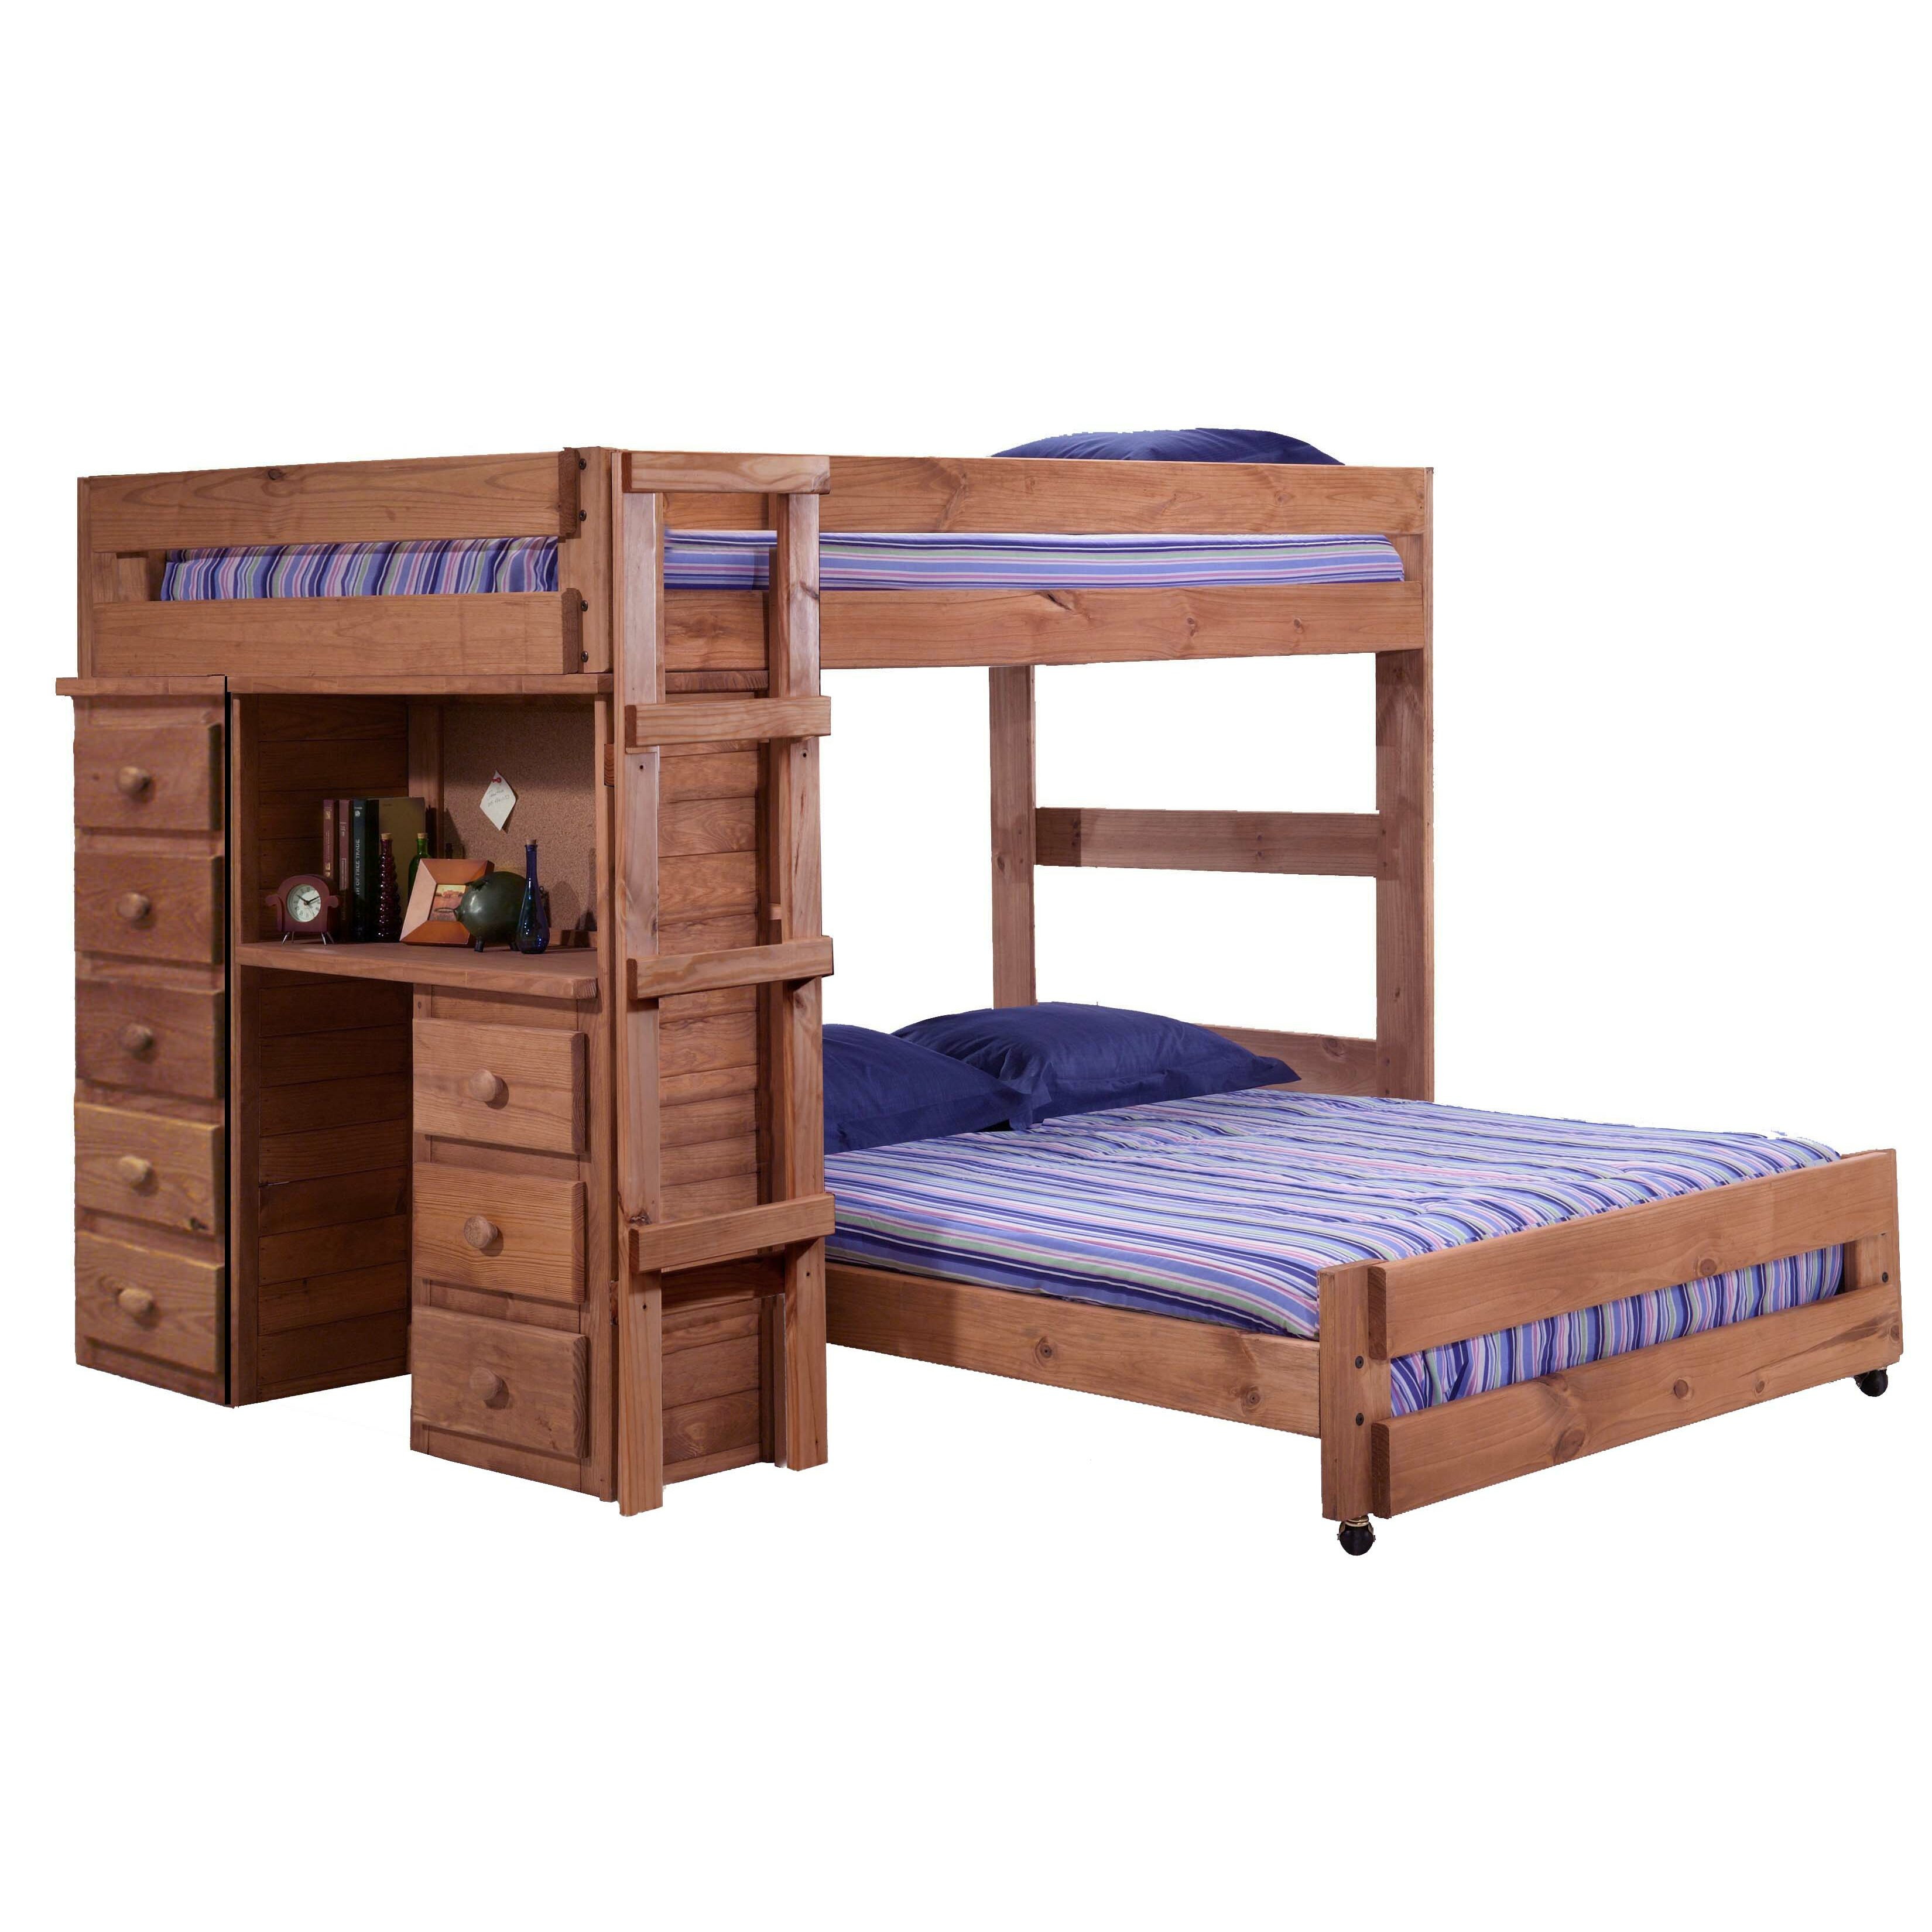 Full over Full L Shaped Bunk Bed with Storage